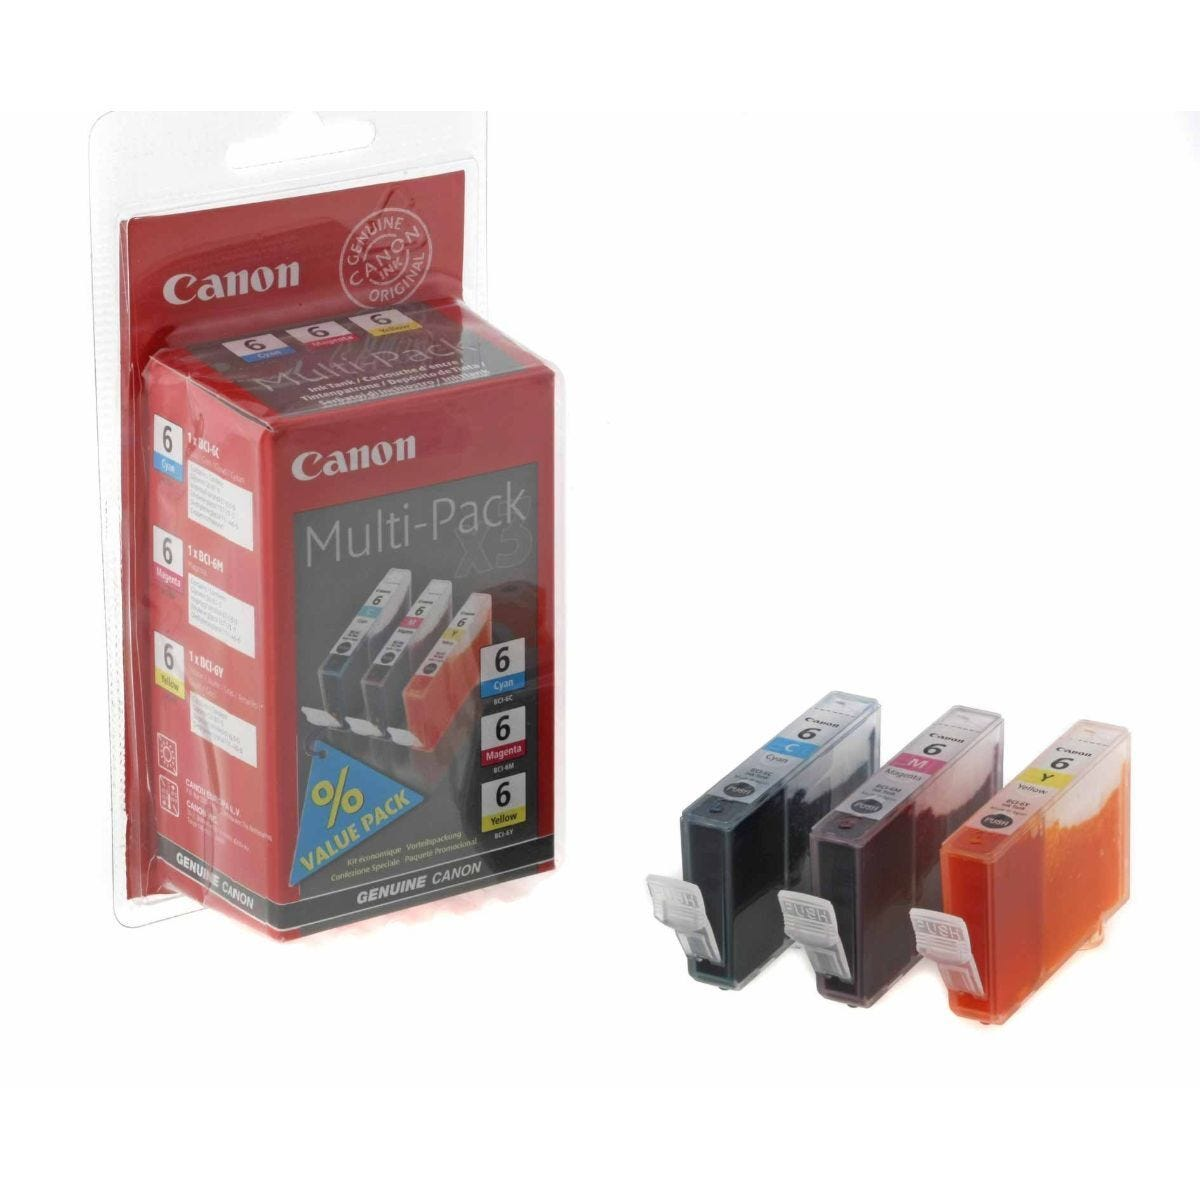 Canon BC-6 Ink Cartridge Pack of 3 13ml